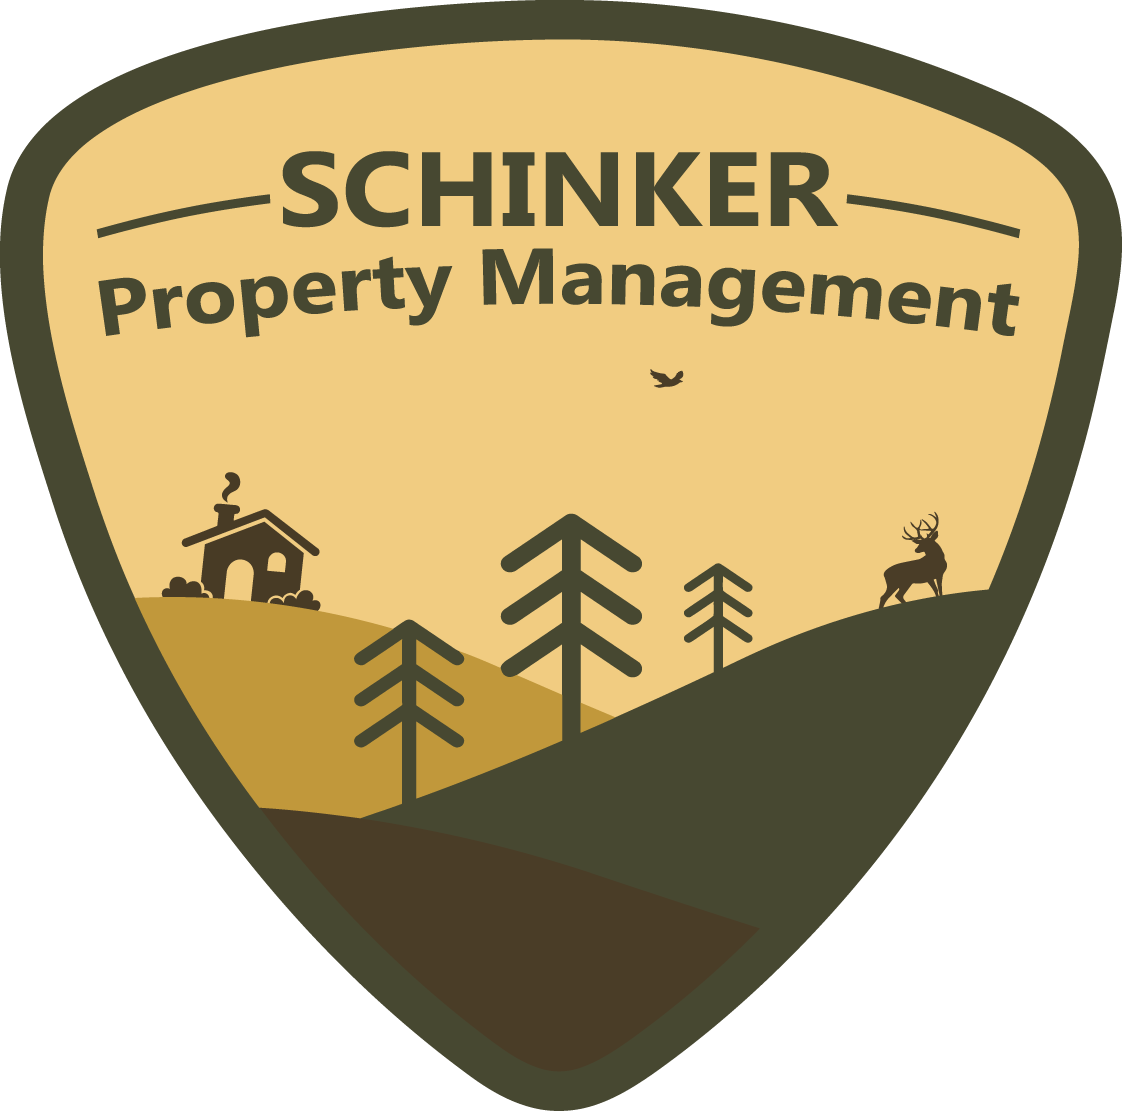 Schinker Property Management primary image